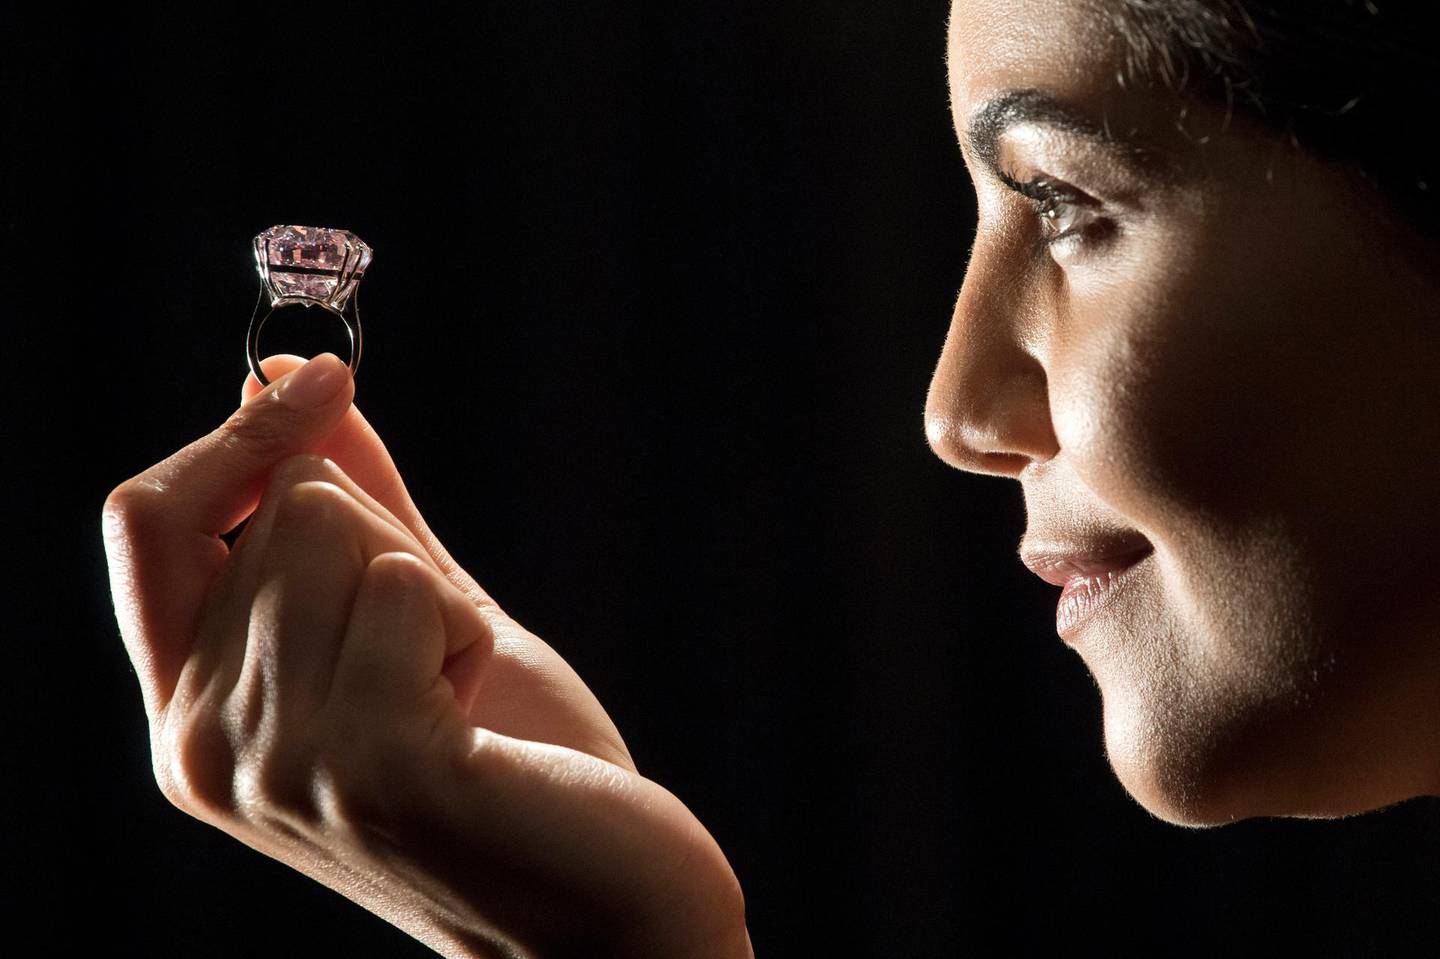 """A model poses with a 59.60-carat oval mixed-cut pink diamond, known as """"The Pink Star"""", during a photocall at Sotheby's auction house in London on March 20, 2017, to promote its forthcoming auction. - The diamond, with an estimated value of 48.5 million GBP (60 million euros; 60 million USD), is said to be the largest Internally Flawless Fancy Vivid Pink diamond that the Gemological Institute of America (GIA) has ever graded, and is set to be auctioned in Hong Kong on April 4, 2017. (Photo by Justin TALLIS / AFP)"""